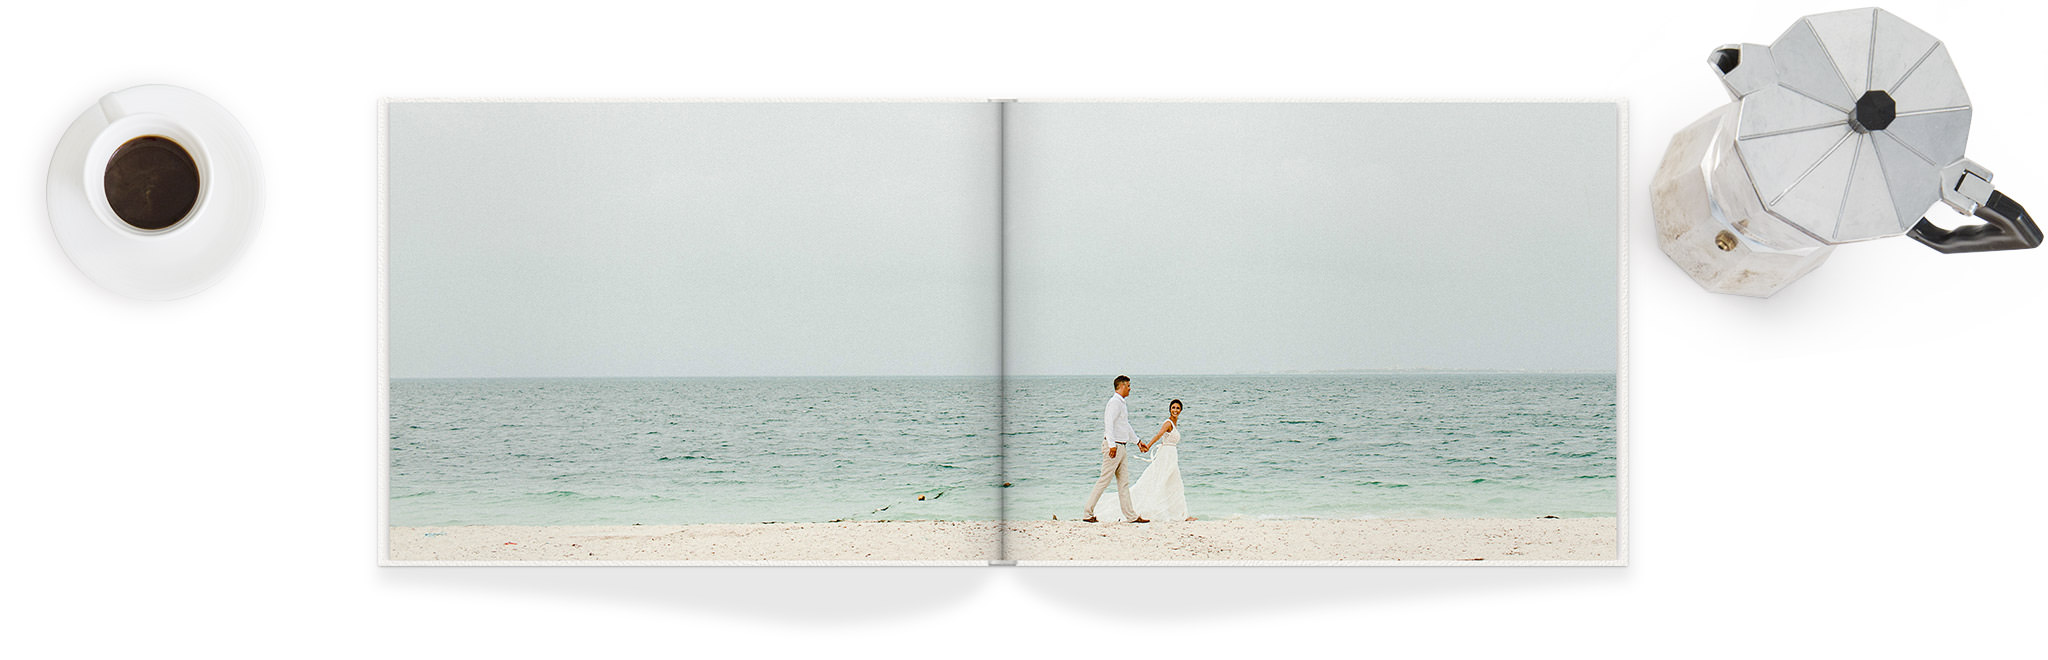 Photo Book open to a full page spread with an image of newlyweds walking hand in hand on a beach.